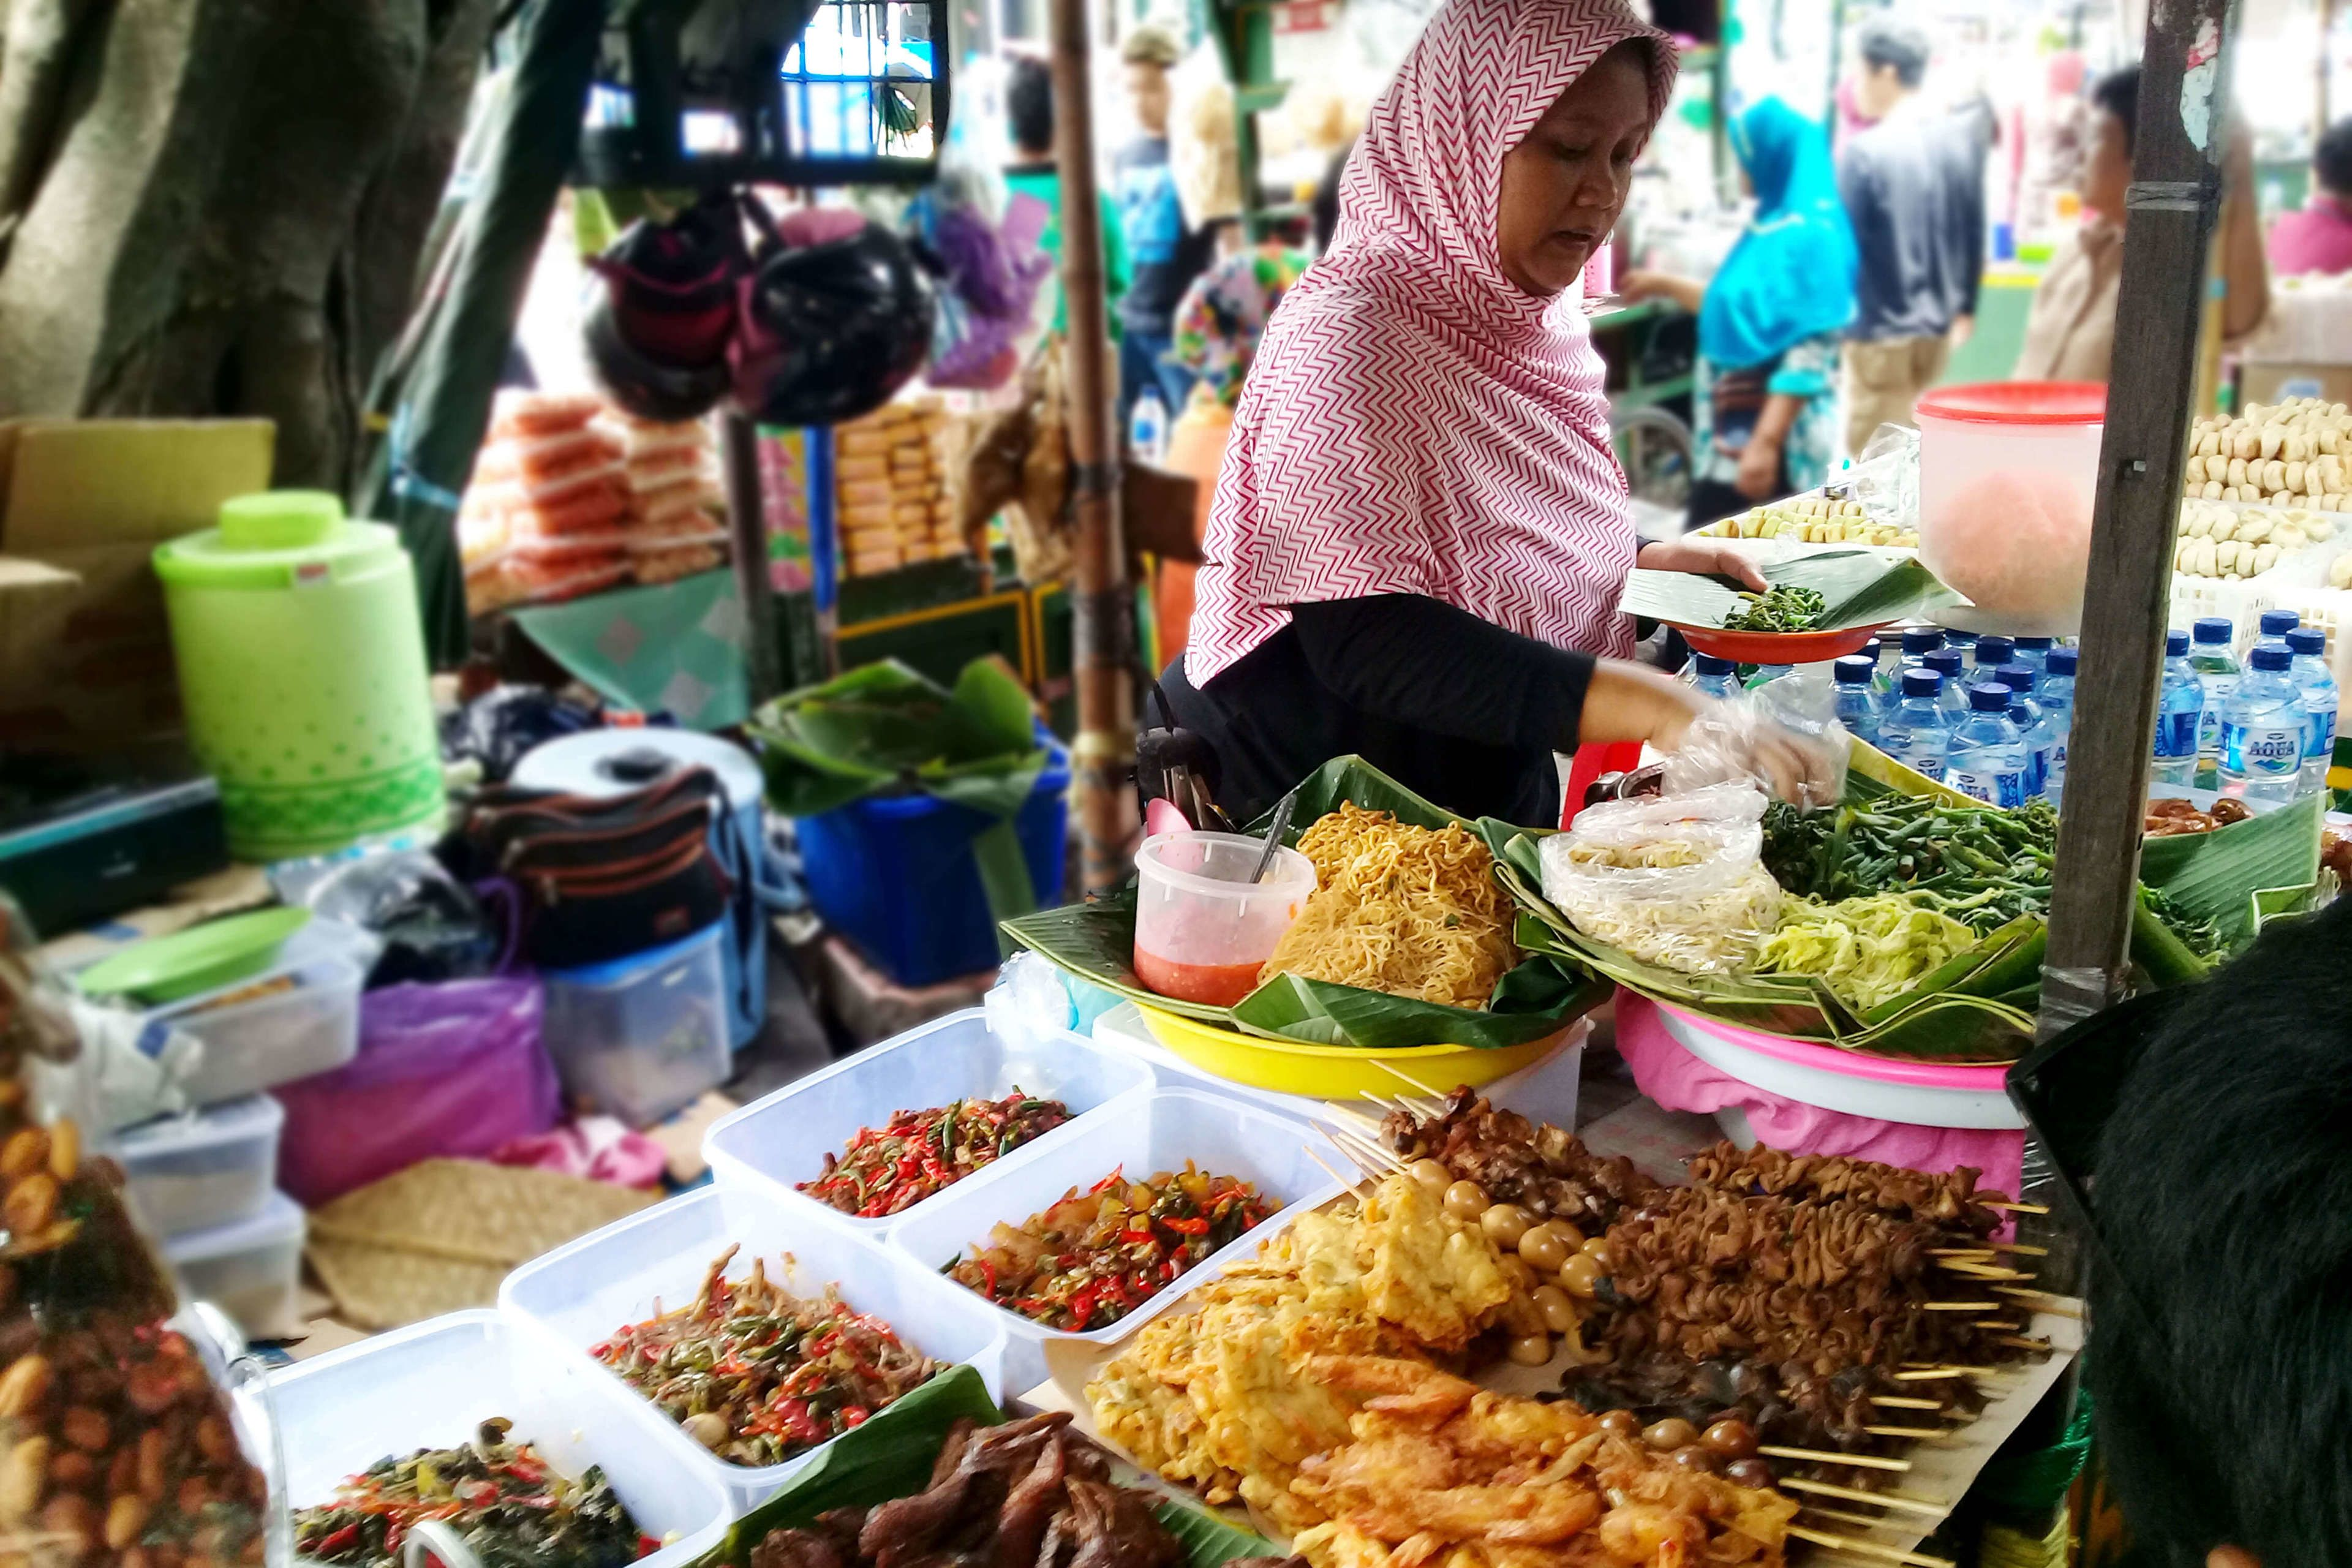 Woman selling food at an open air market in Indonesia